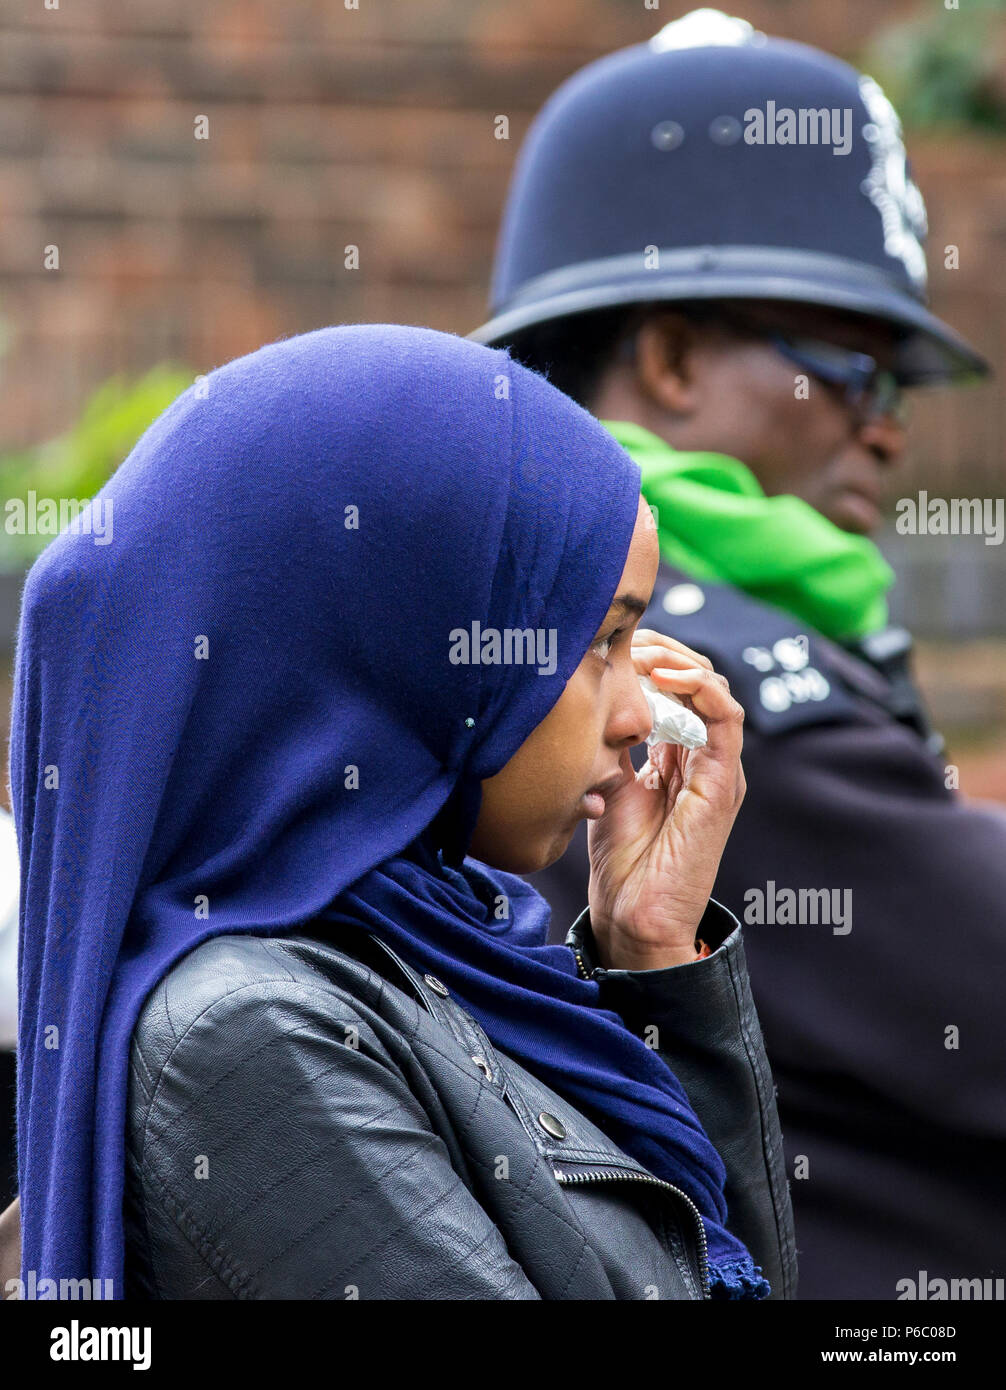 The first anniversary of the 24-storey Grenfell Tower block of public housing flats fire which claimed 72 lives. Young female wipes tears away during the public memorial service, South Kensington, London, UK, 14th June 2018. - Stock Image